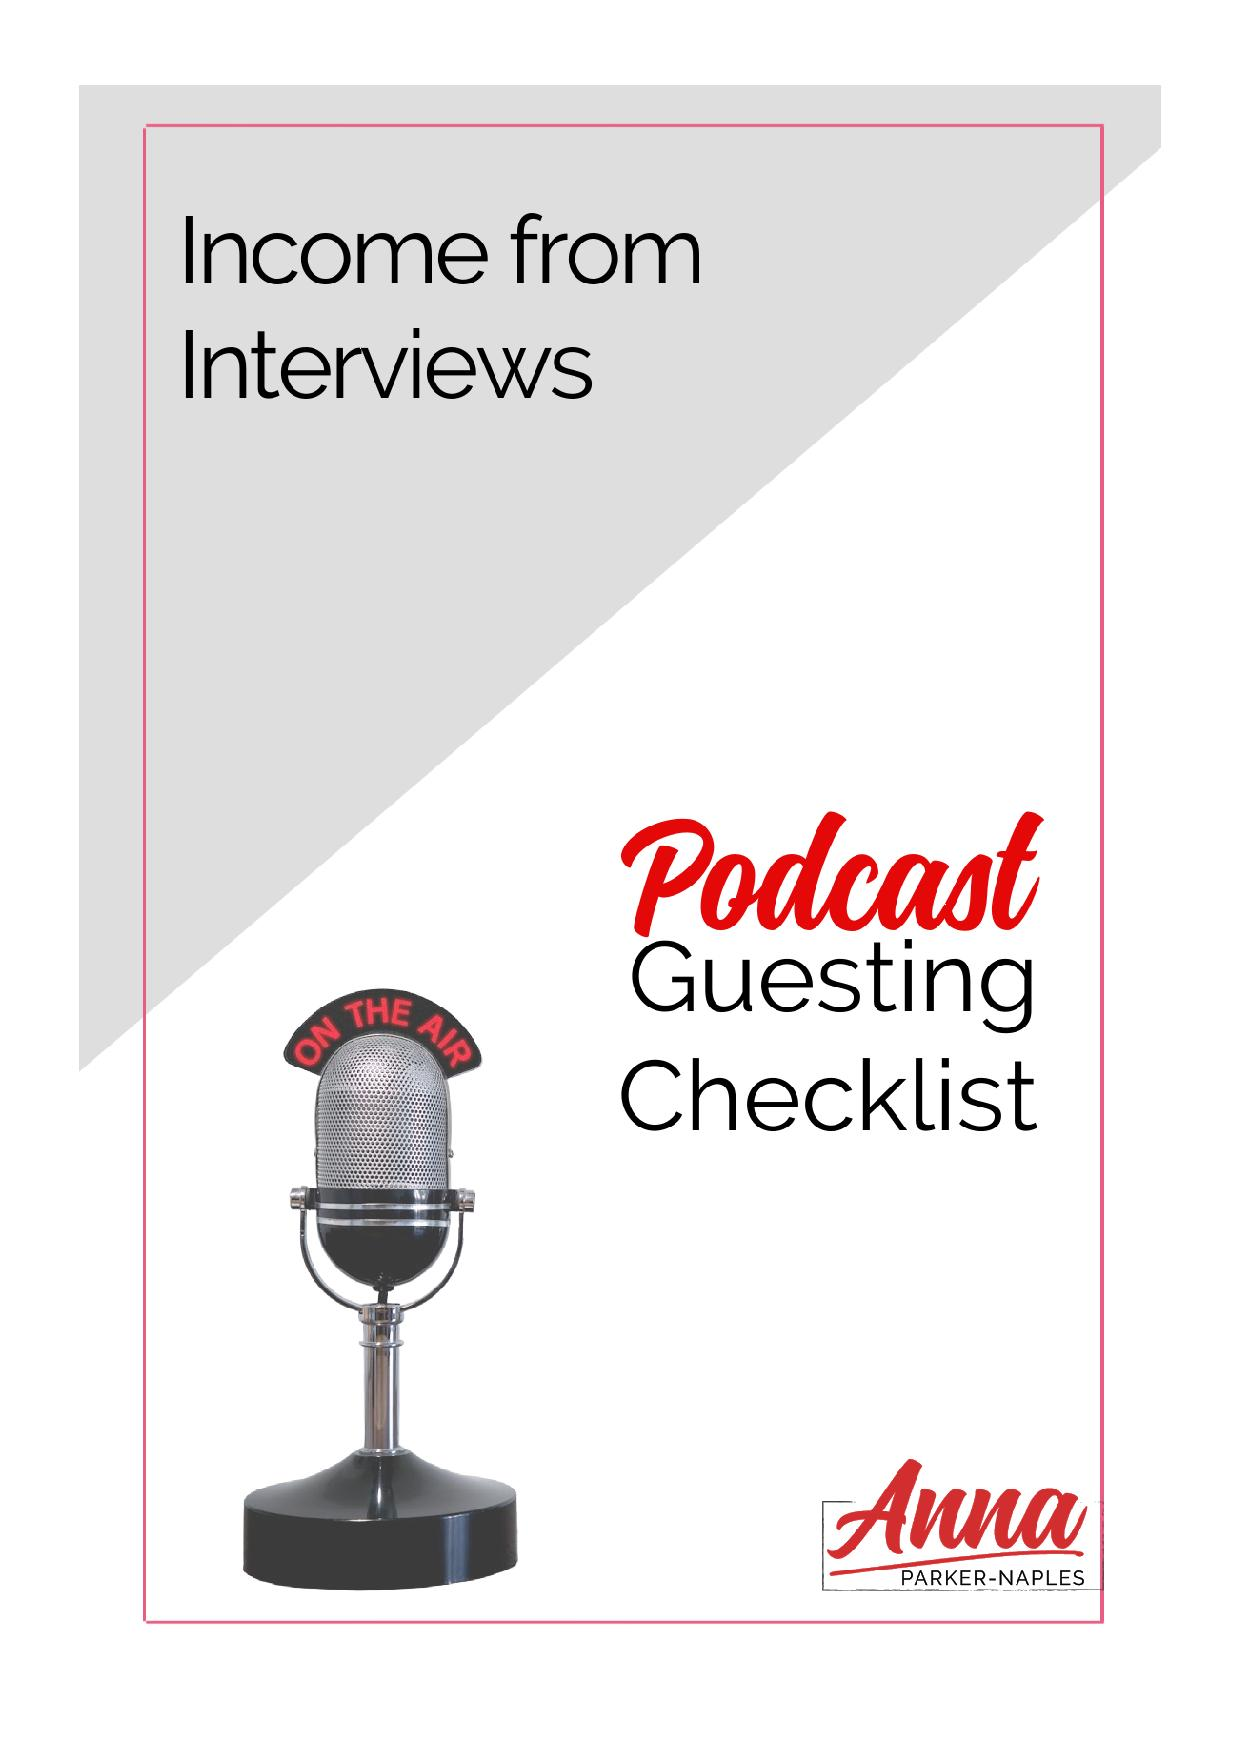 Income from Interviews Podcast Guesting Checklist